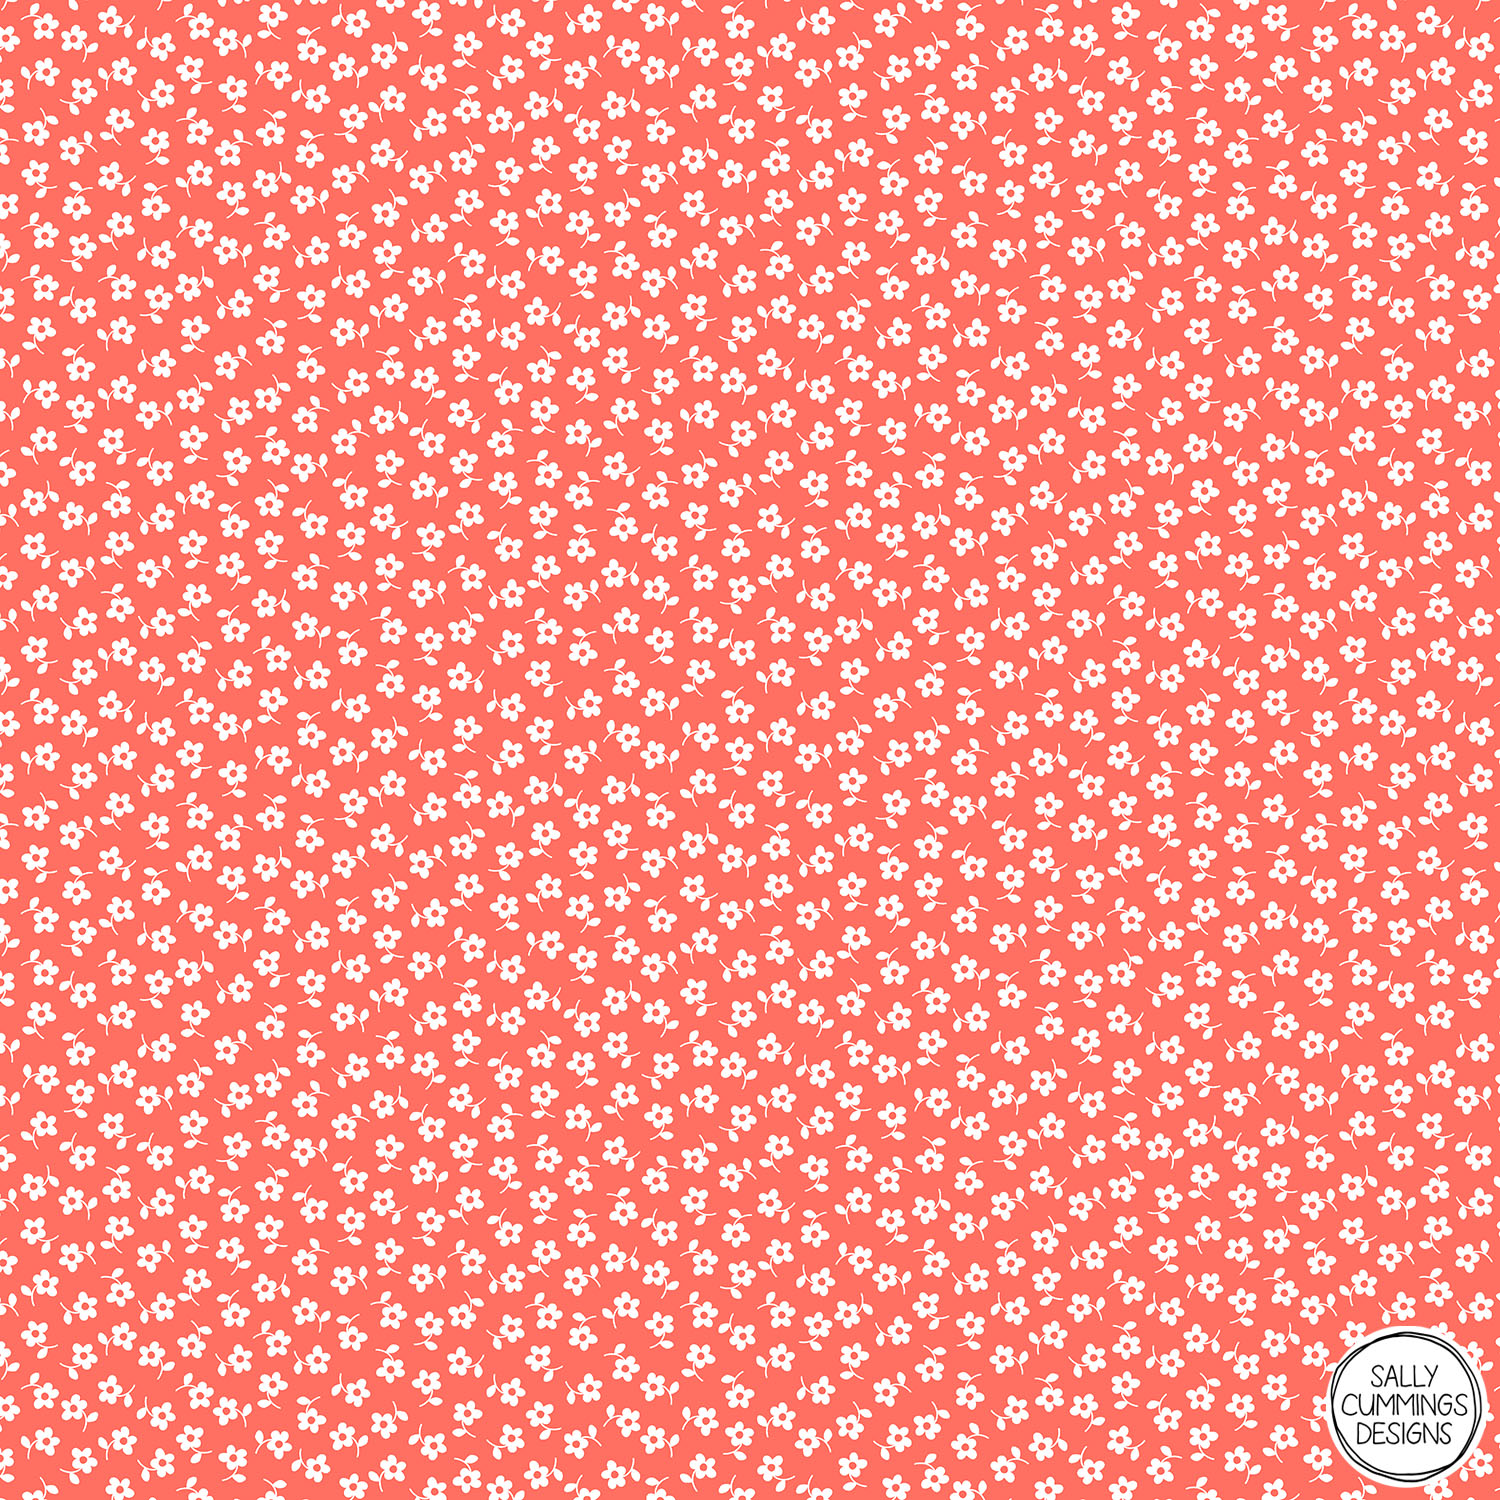 Sally Cummings Designs - Forget Me Nots Pattern (White on Living Coral)